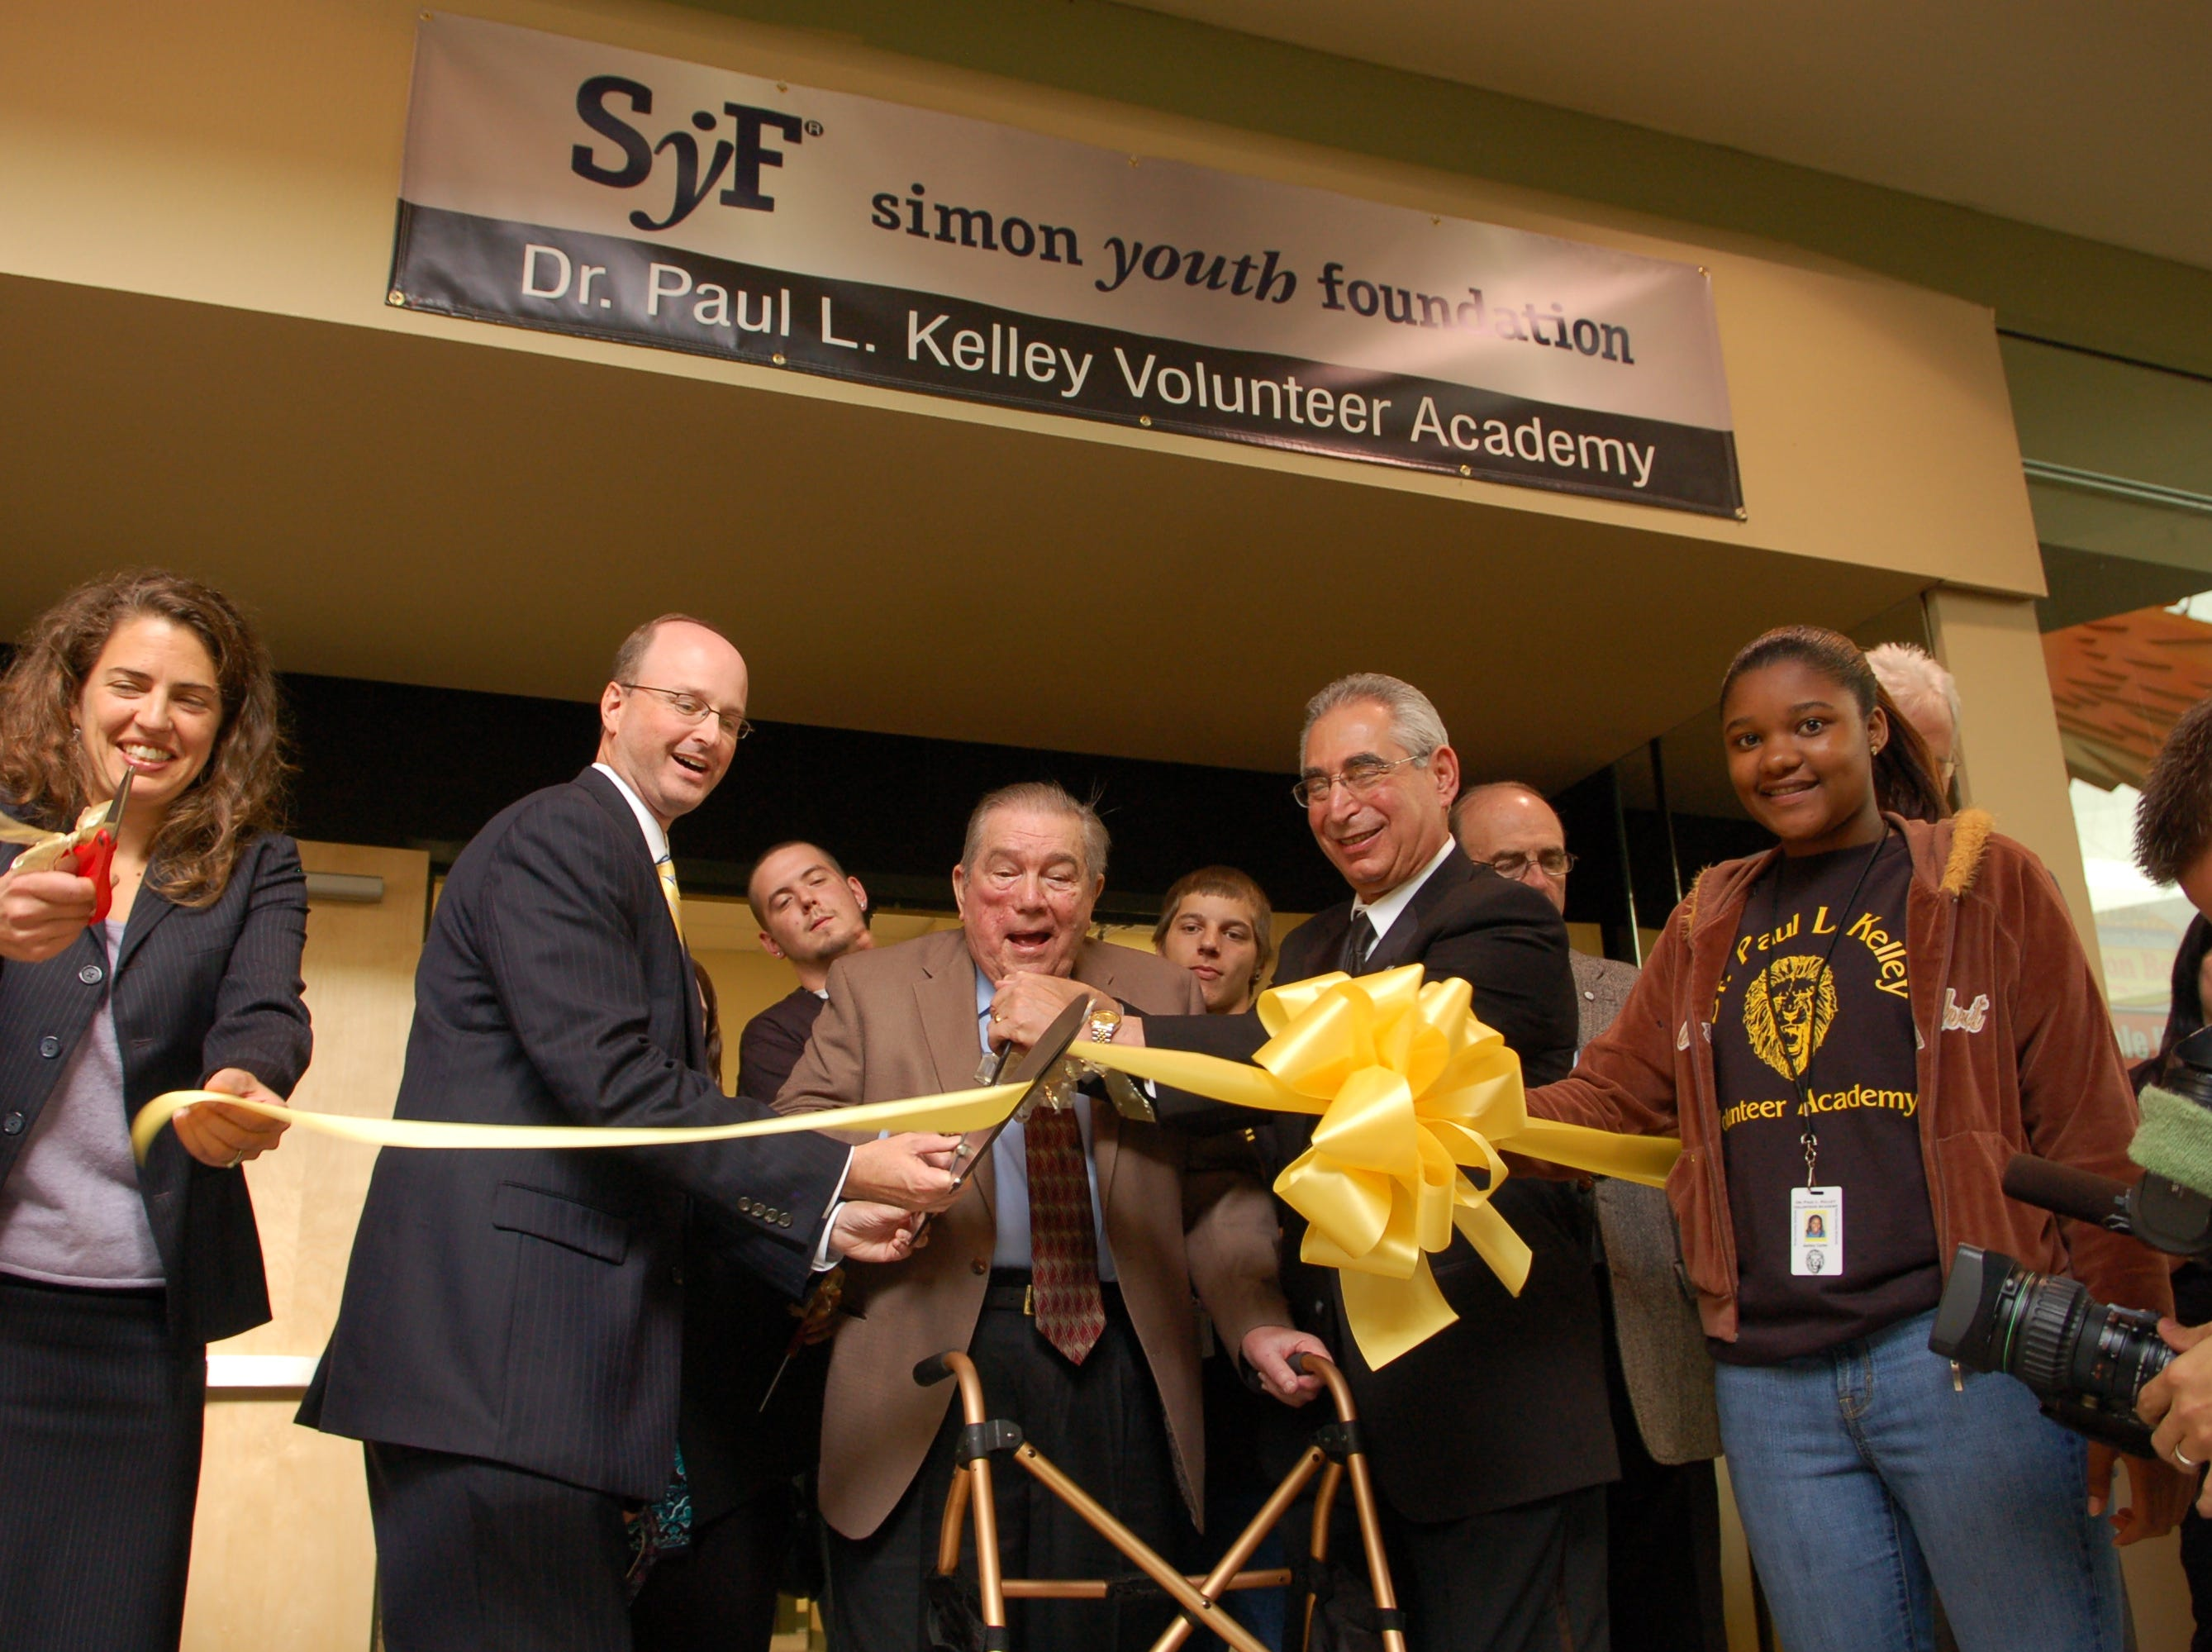 Dr. Paul L. Kelley, center, on Nov. 1, 2010, helps cut the ribbon for the official opening of the Dr. Paul L. Kelley Volunteer Academy - Education Resource Center in Knoxville Center Mall. Front row, from left: Indya Kincannon, chairwoman of the Knox County Board of Education, Superintendent James P. McIntyre Jr., Kelley, Dr. Rick Markoff, executive vice president of the Simon Youth Foundation, and academy student Ashley Carter.